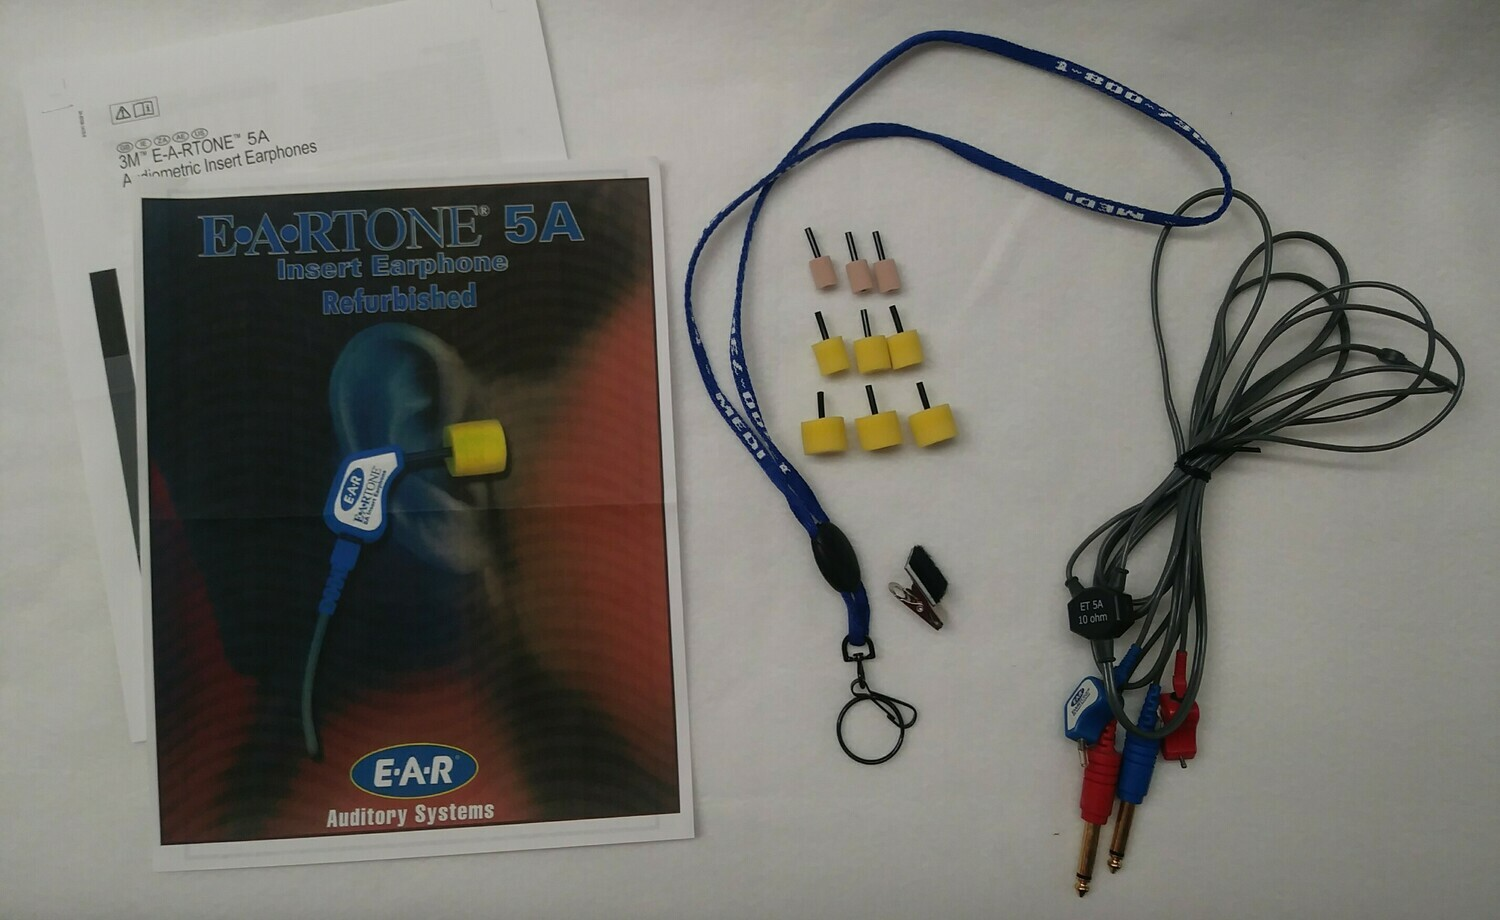 E-A-R-TONE 5A Earphones 50 Ohm—Like New (LIMITED SUPPLY) (7 LEFT)